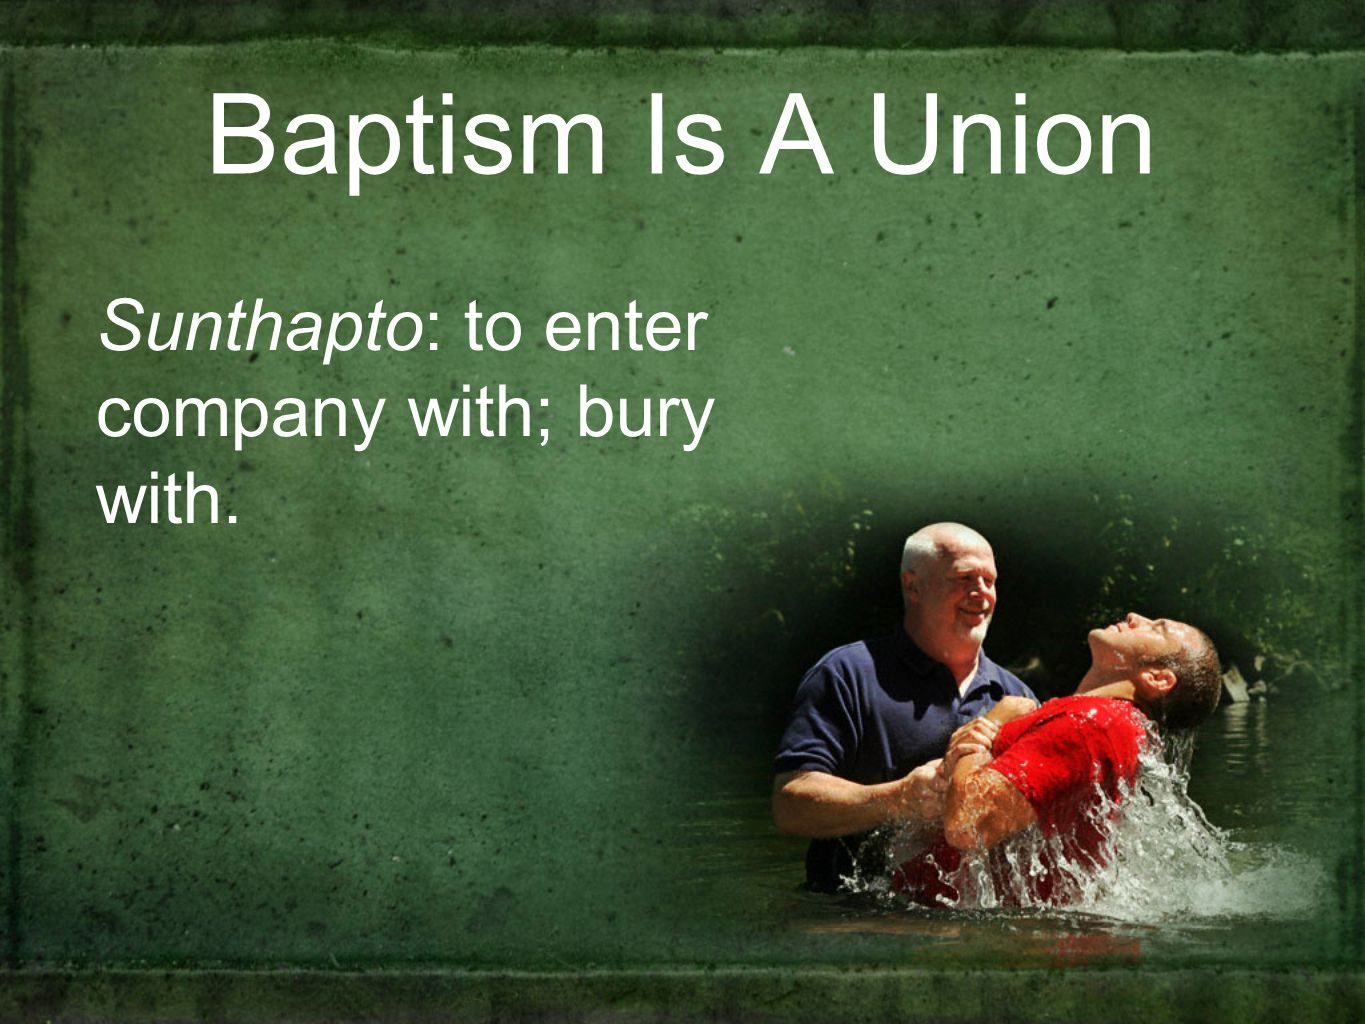 Baptism Is A Union Sunthapto: to enter company with; bury with.